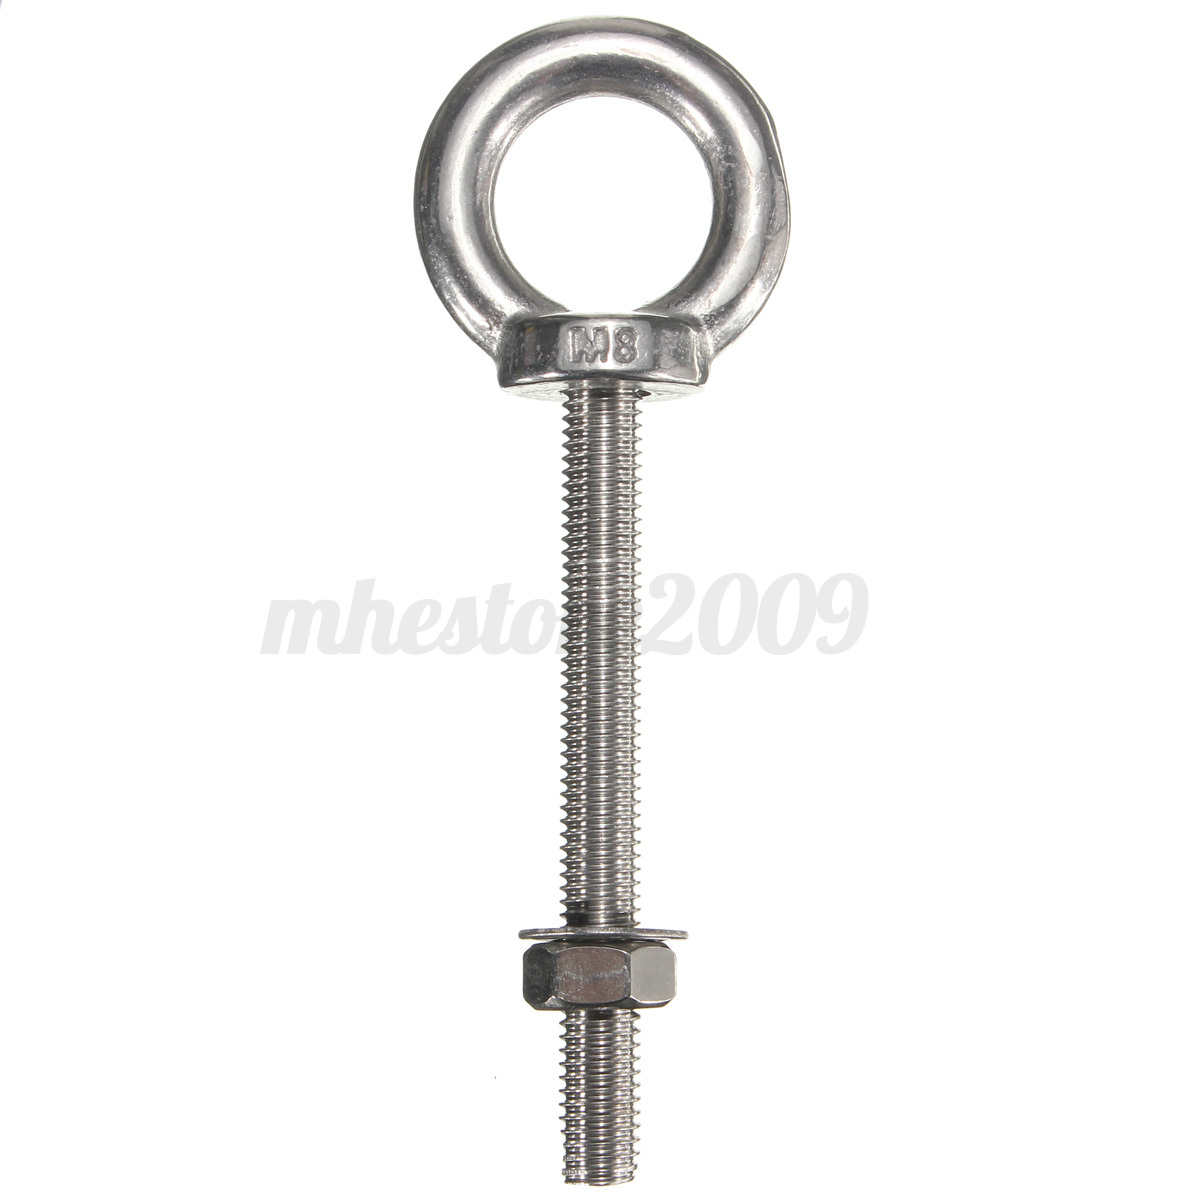 M6 M8 M10 M12 Marine Grade Stainless Steel Lifting Eye